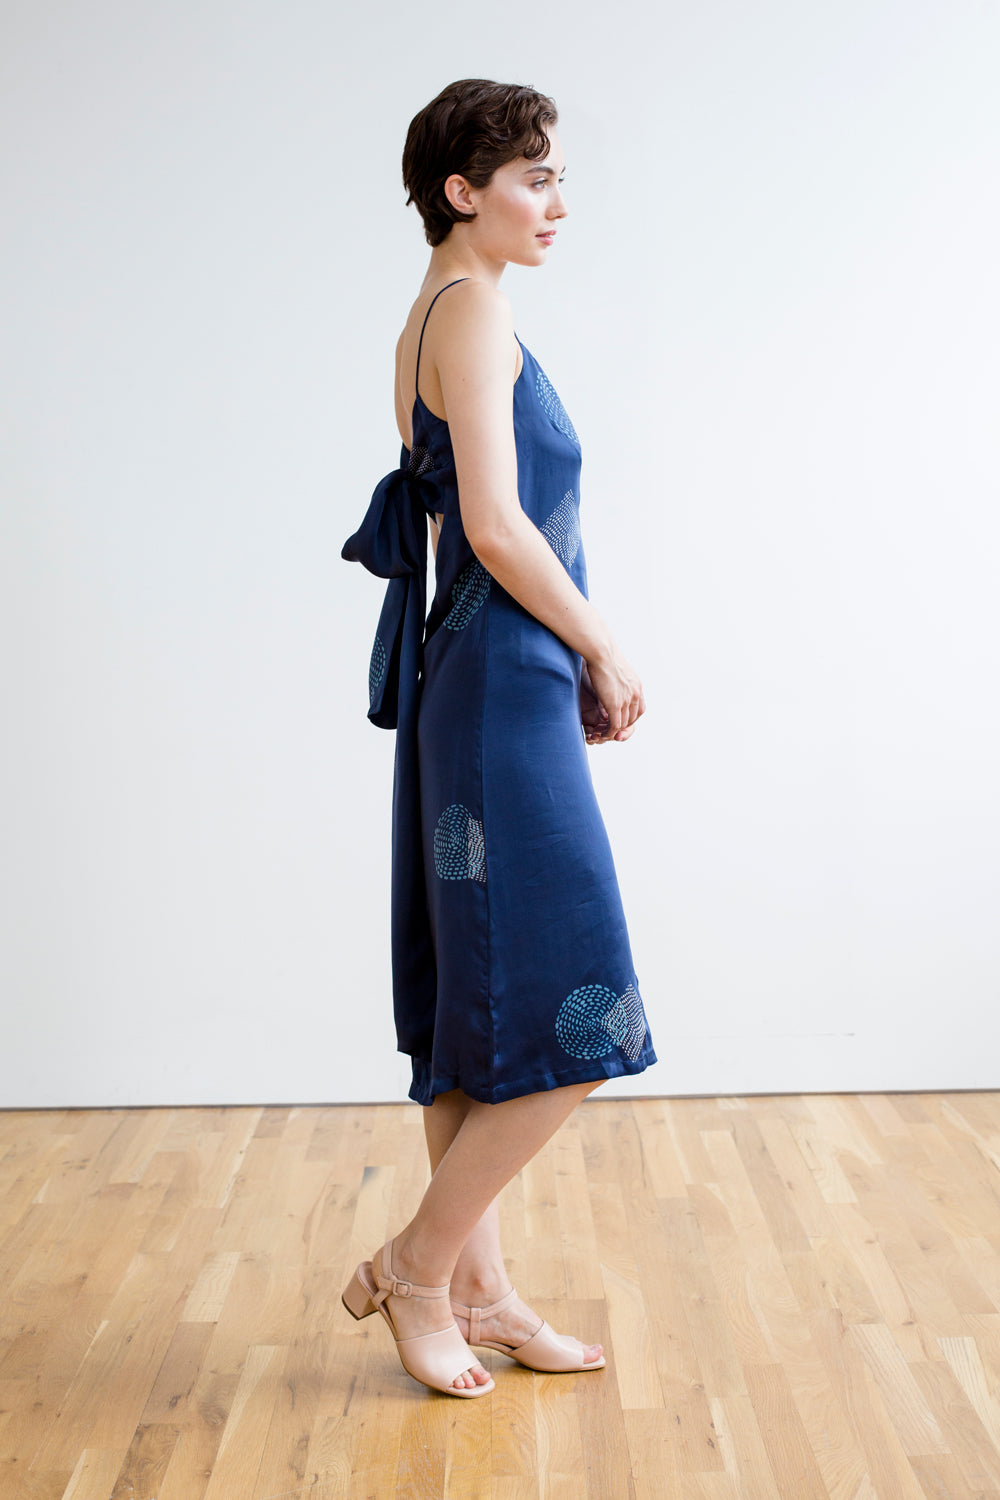 Slip Dress | Wonderland Print in Indigo: Pre-Order